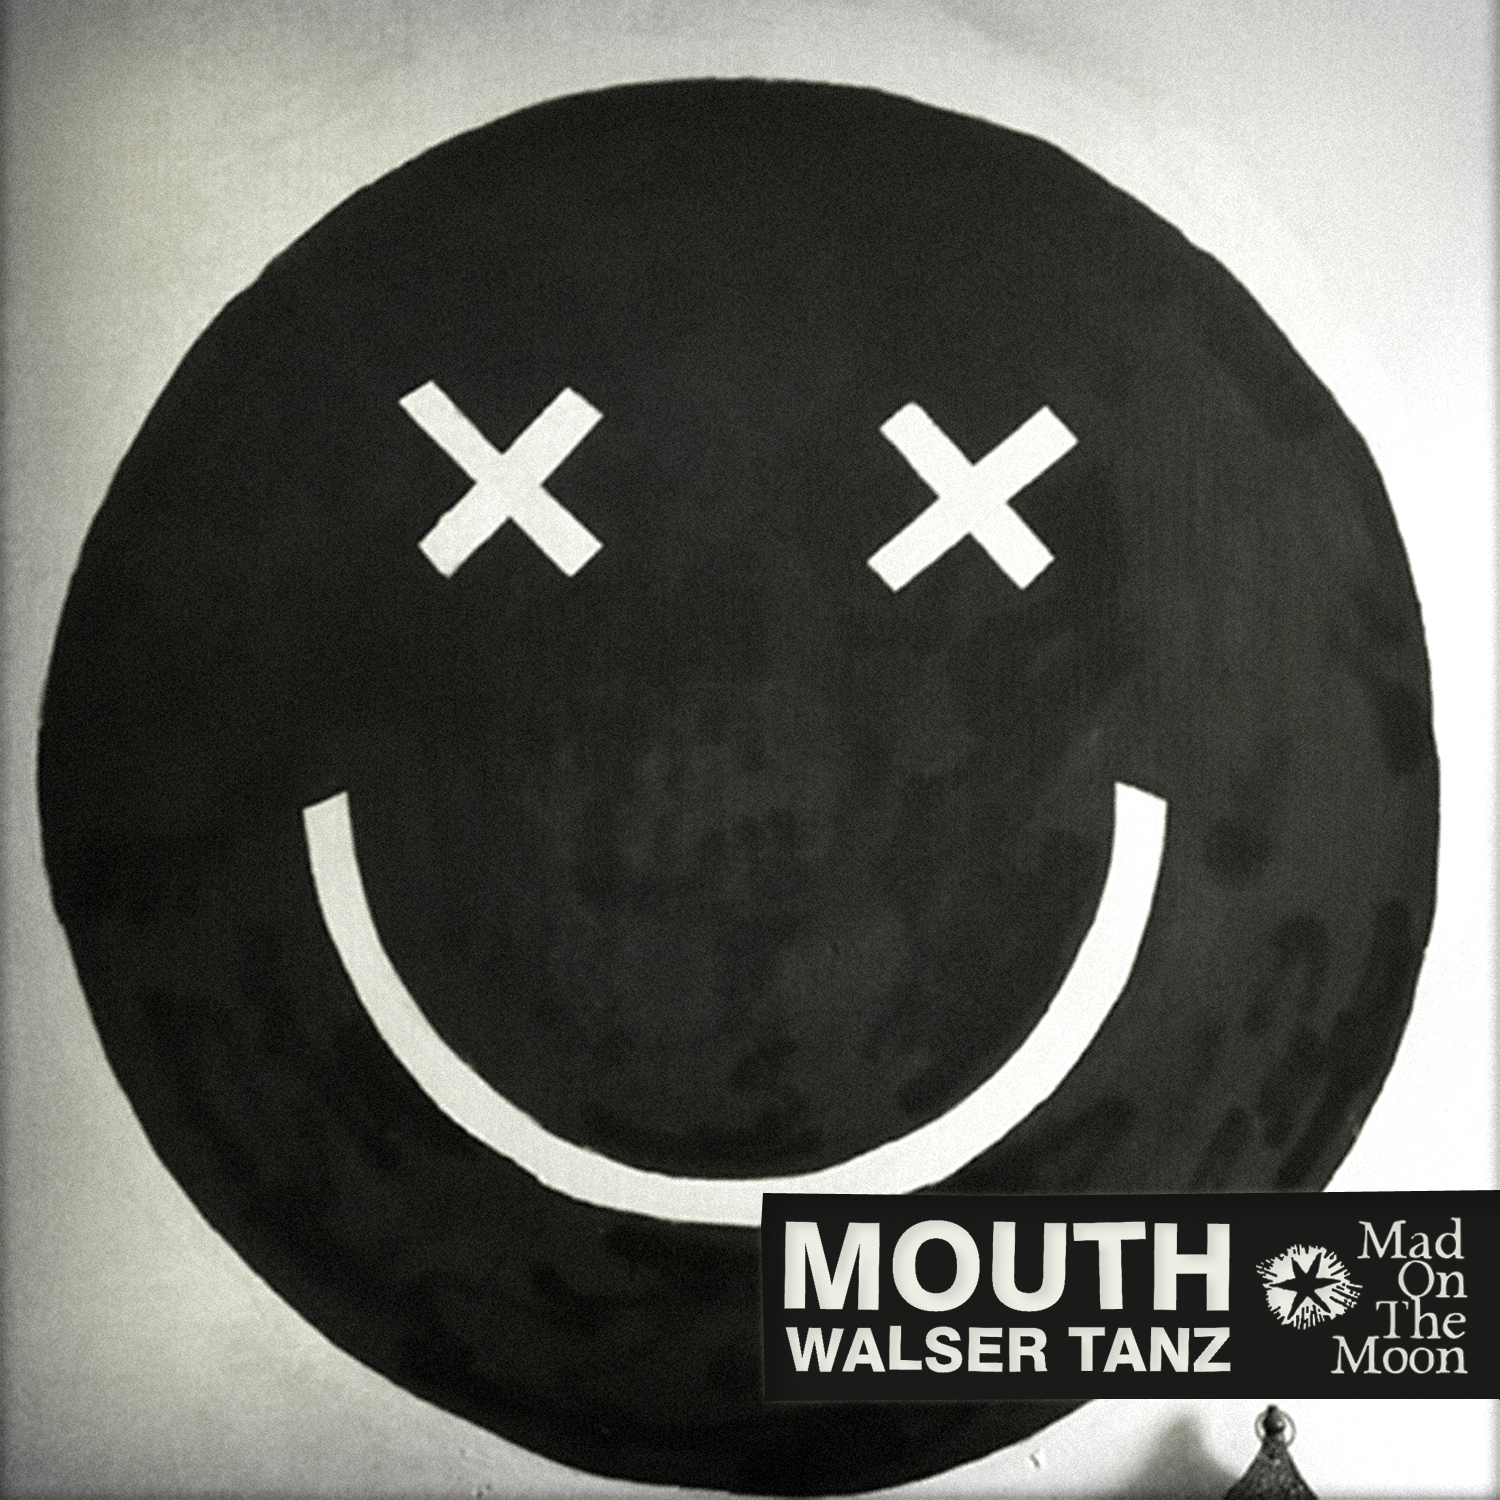 Mouth - Walser Tanz